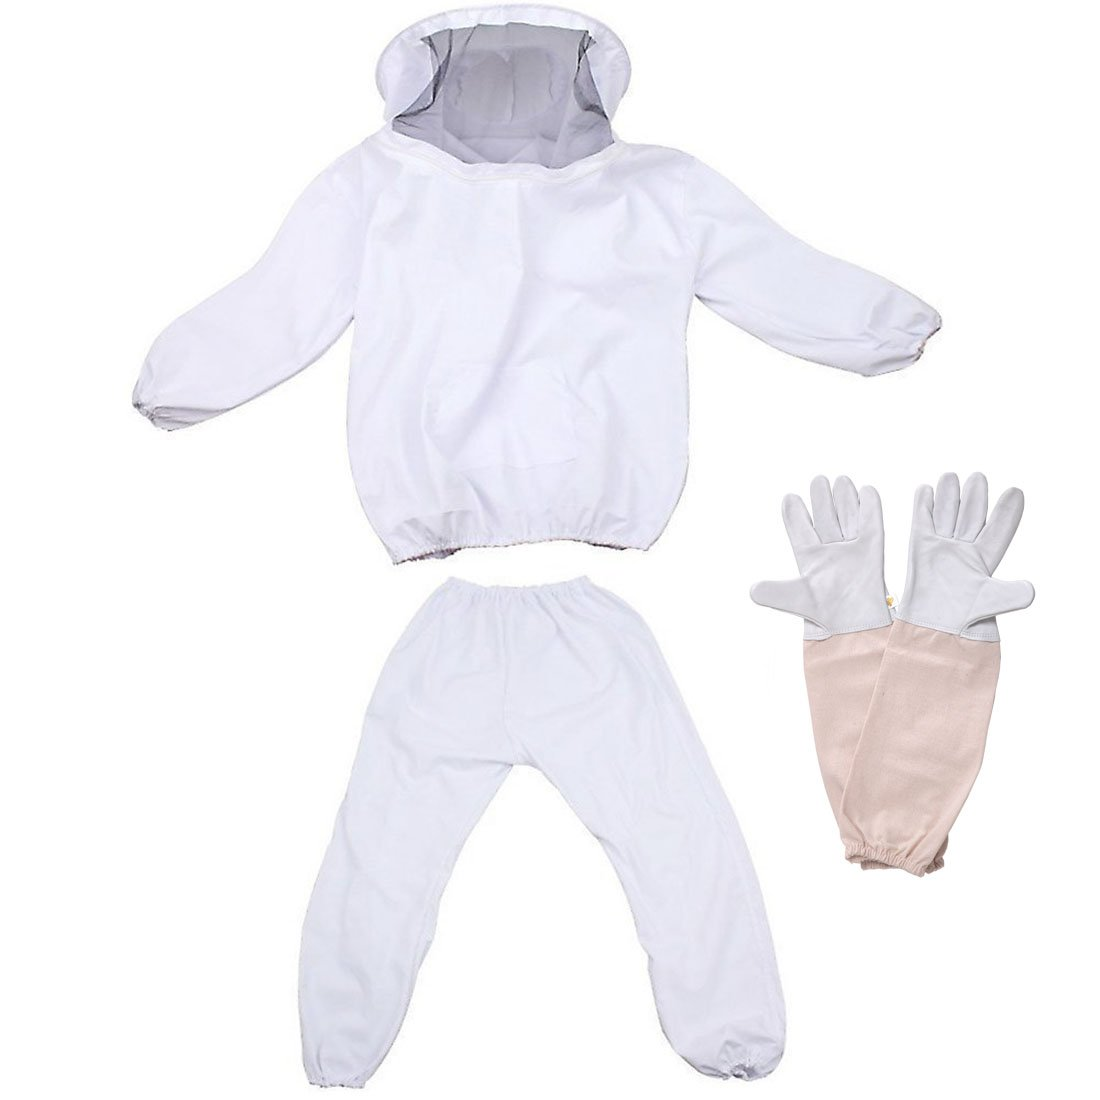 Feekr Professional Beekeeping Suit Jacket with Pants and Goat Skin Long Sleeve Gloves, Medium(White)